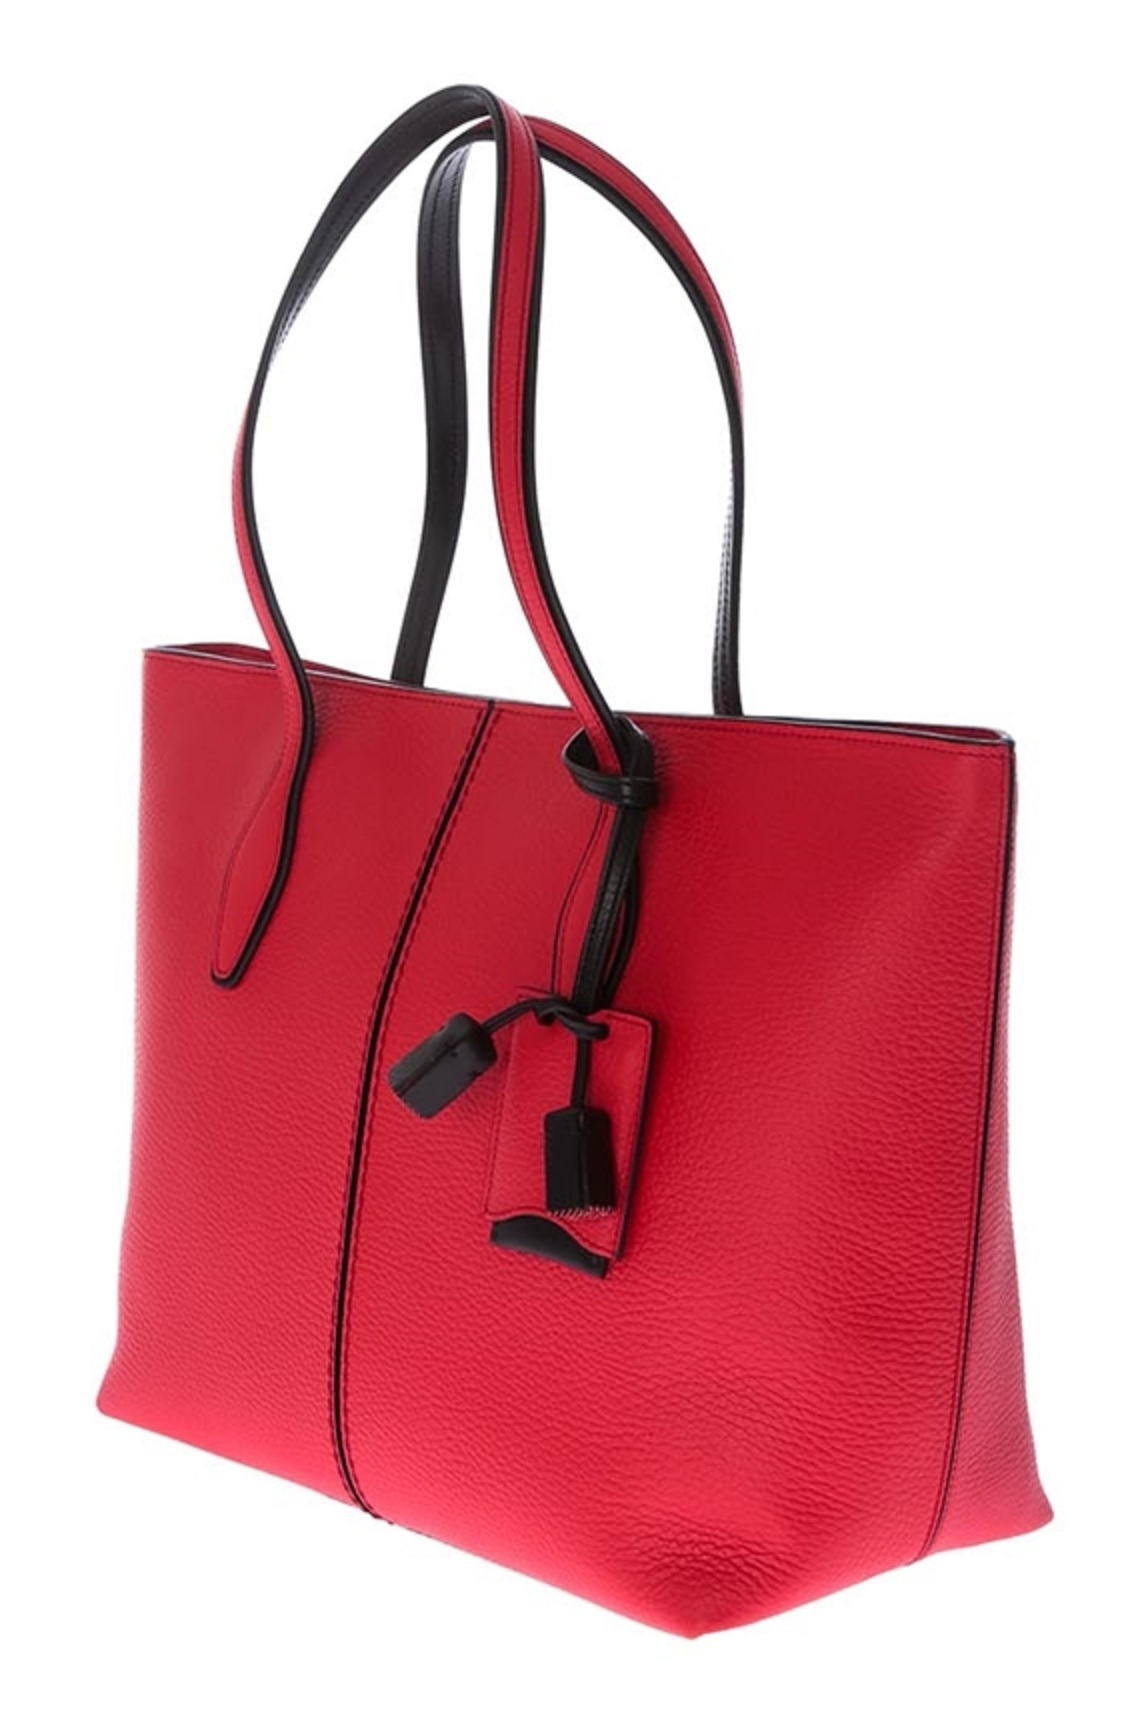 安心の関送込【TOD'S】Shopping Tote Bag Red